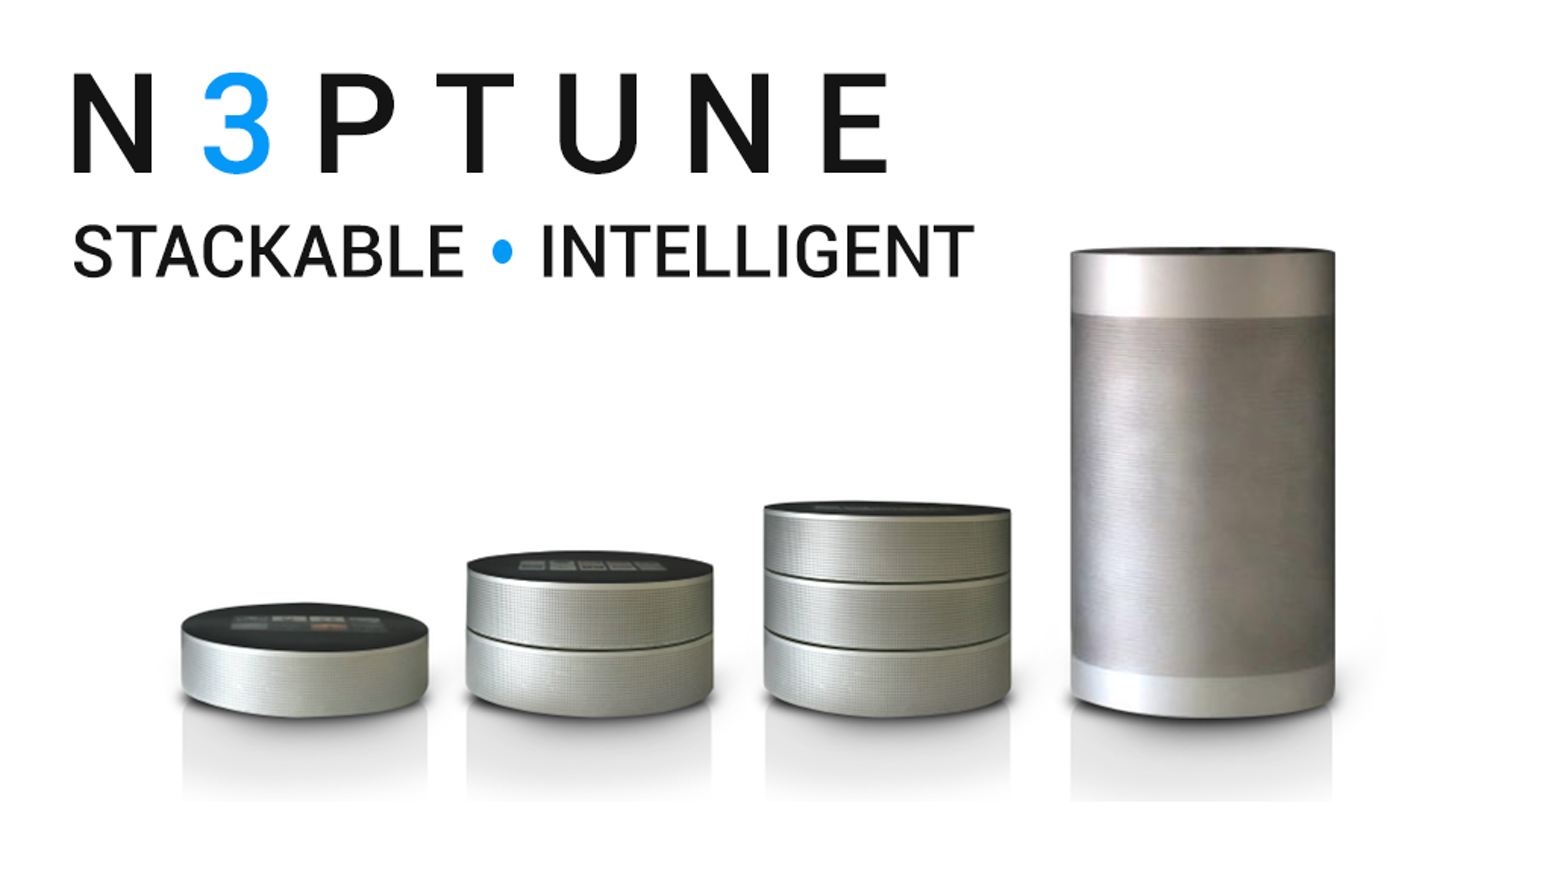 n3ptune intelligent stackable wireless speaker by n3ptune audio